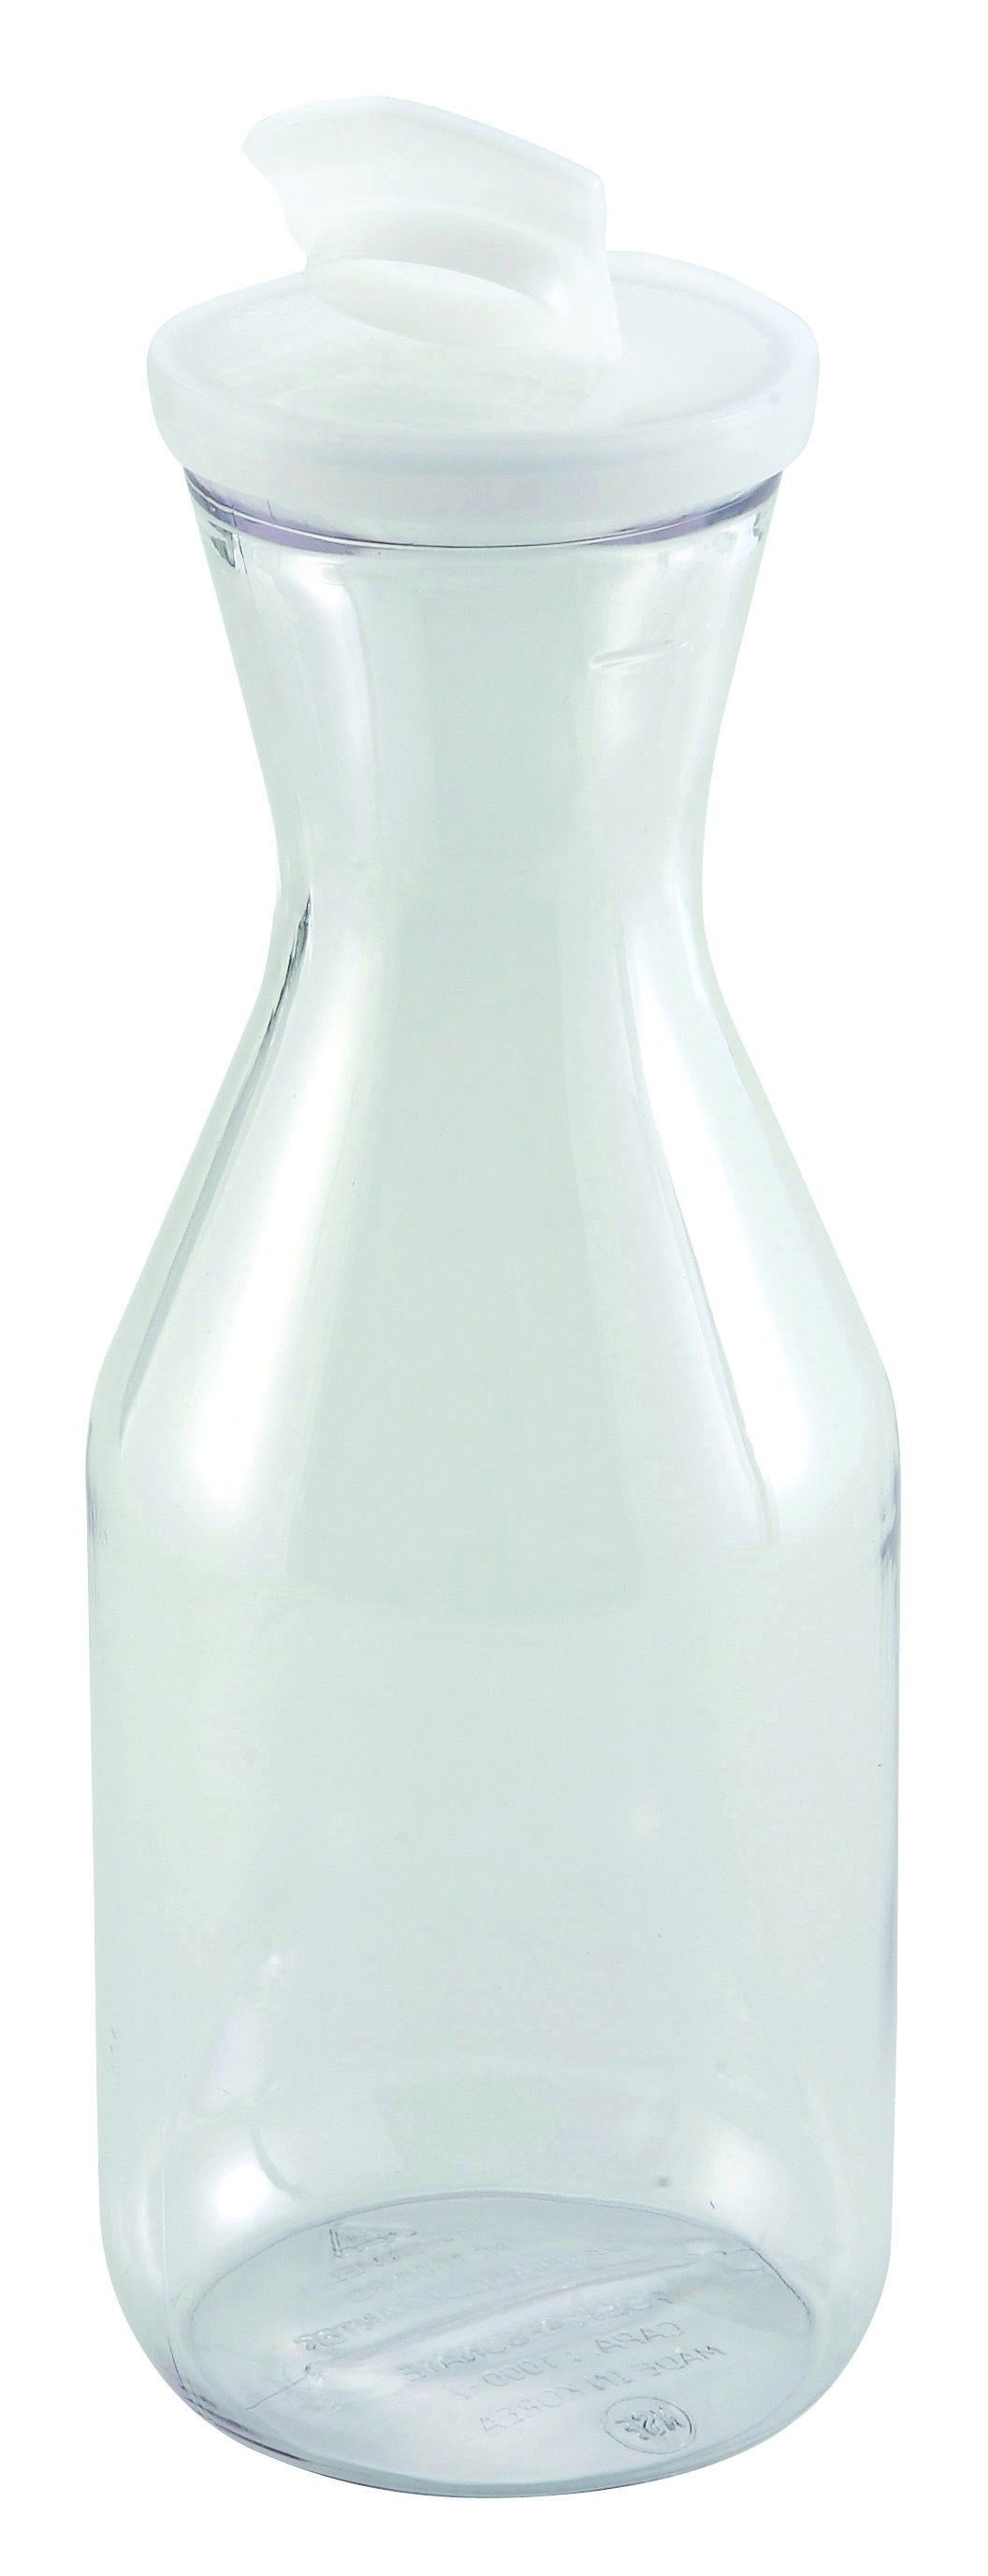 Winco PDT-10 Polycarbonate Decanter with Lid 1L